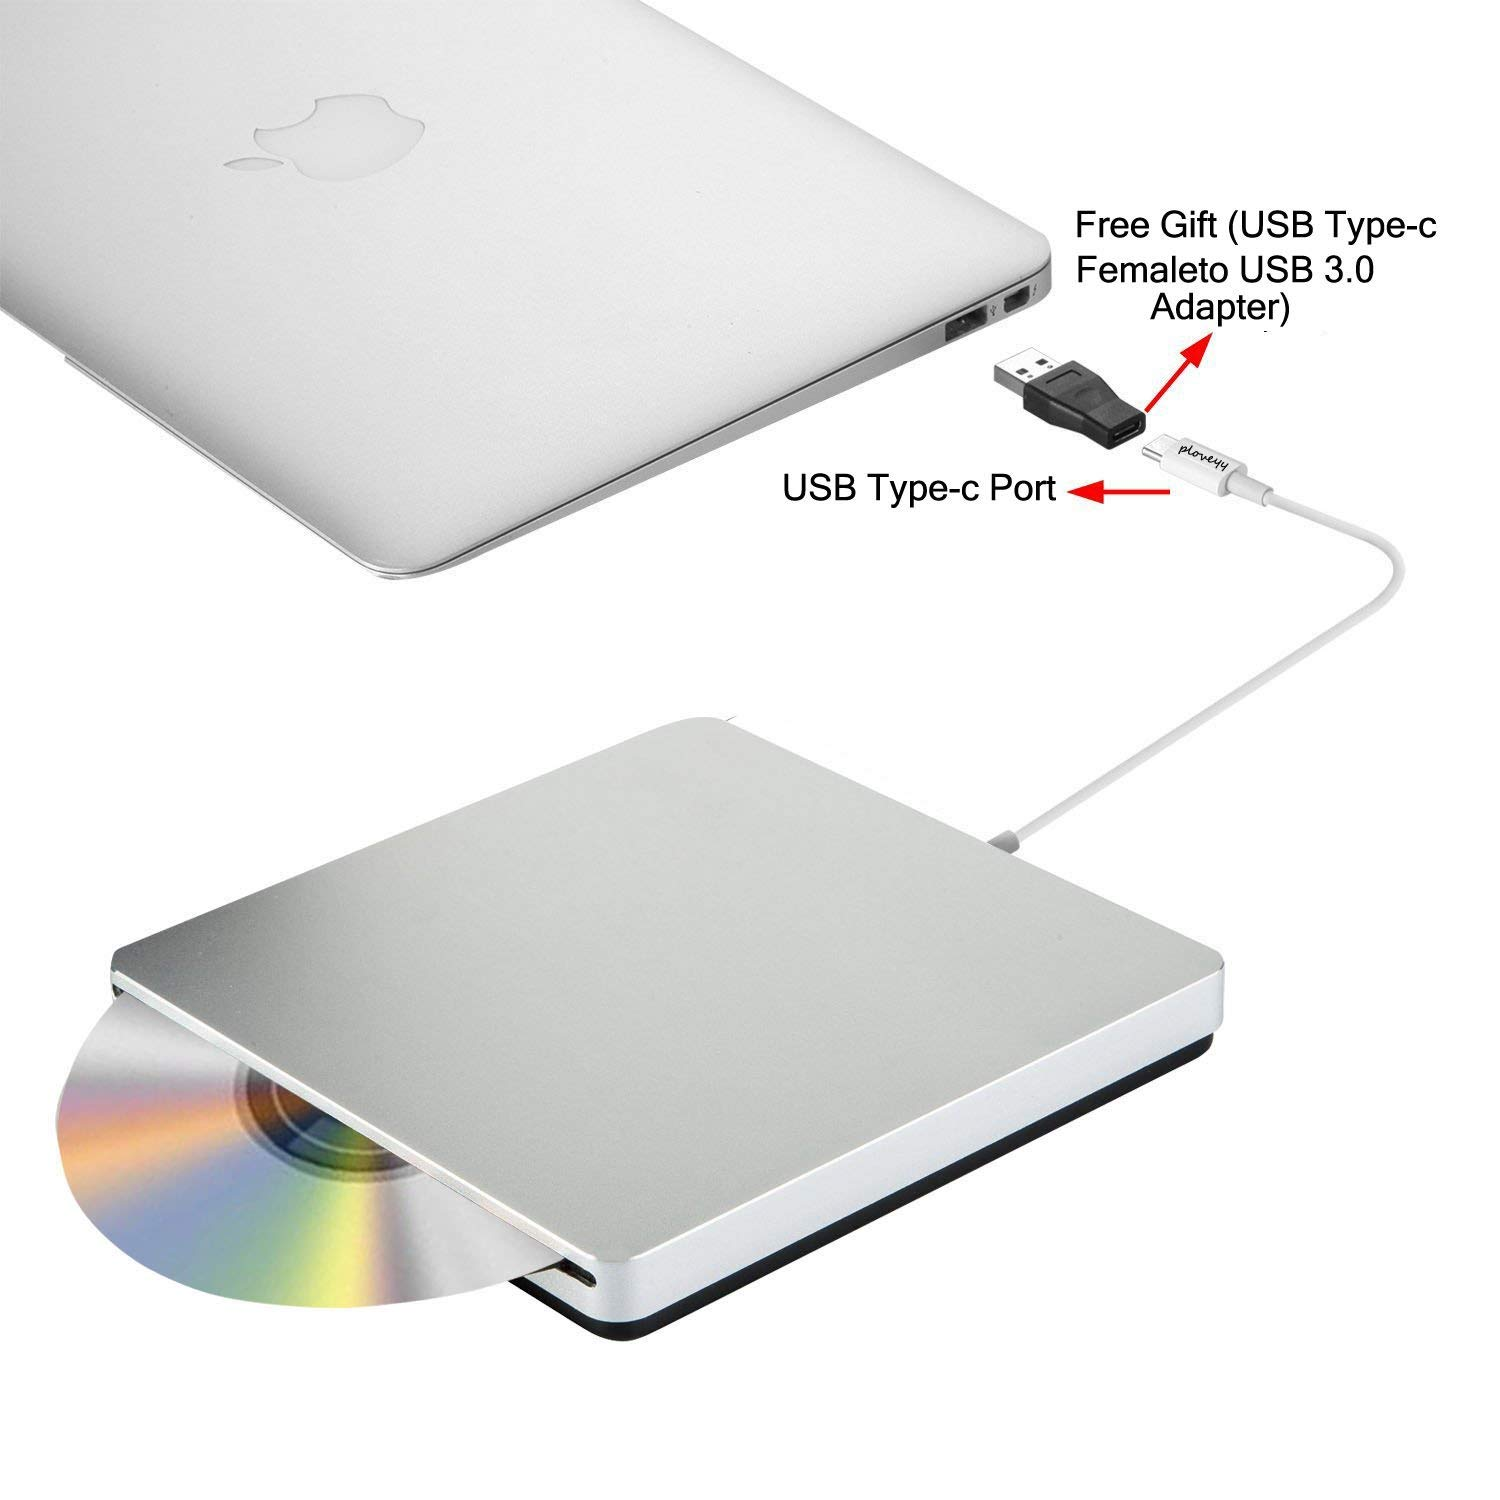 Ploveyy USB-C Superdrive External DVD/CD Reader and DVD/CD Burner for MacBook Air/Pro/iMac/Mini/MacBook Pro/ASUS/DELL Latitude with USB-C Port Plug and Play - Silver, Premium Series by Ploveyy (Image #4)